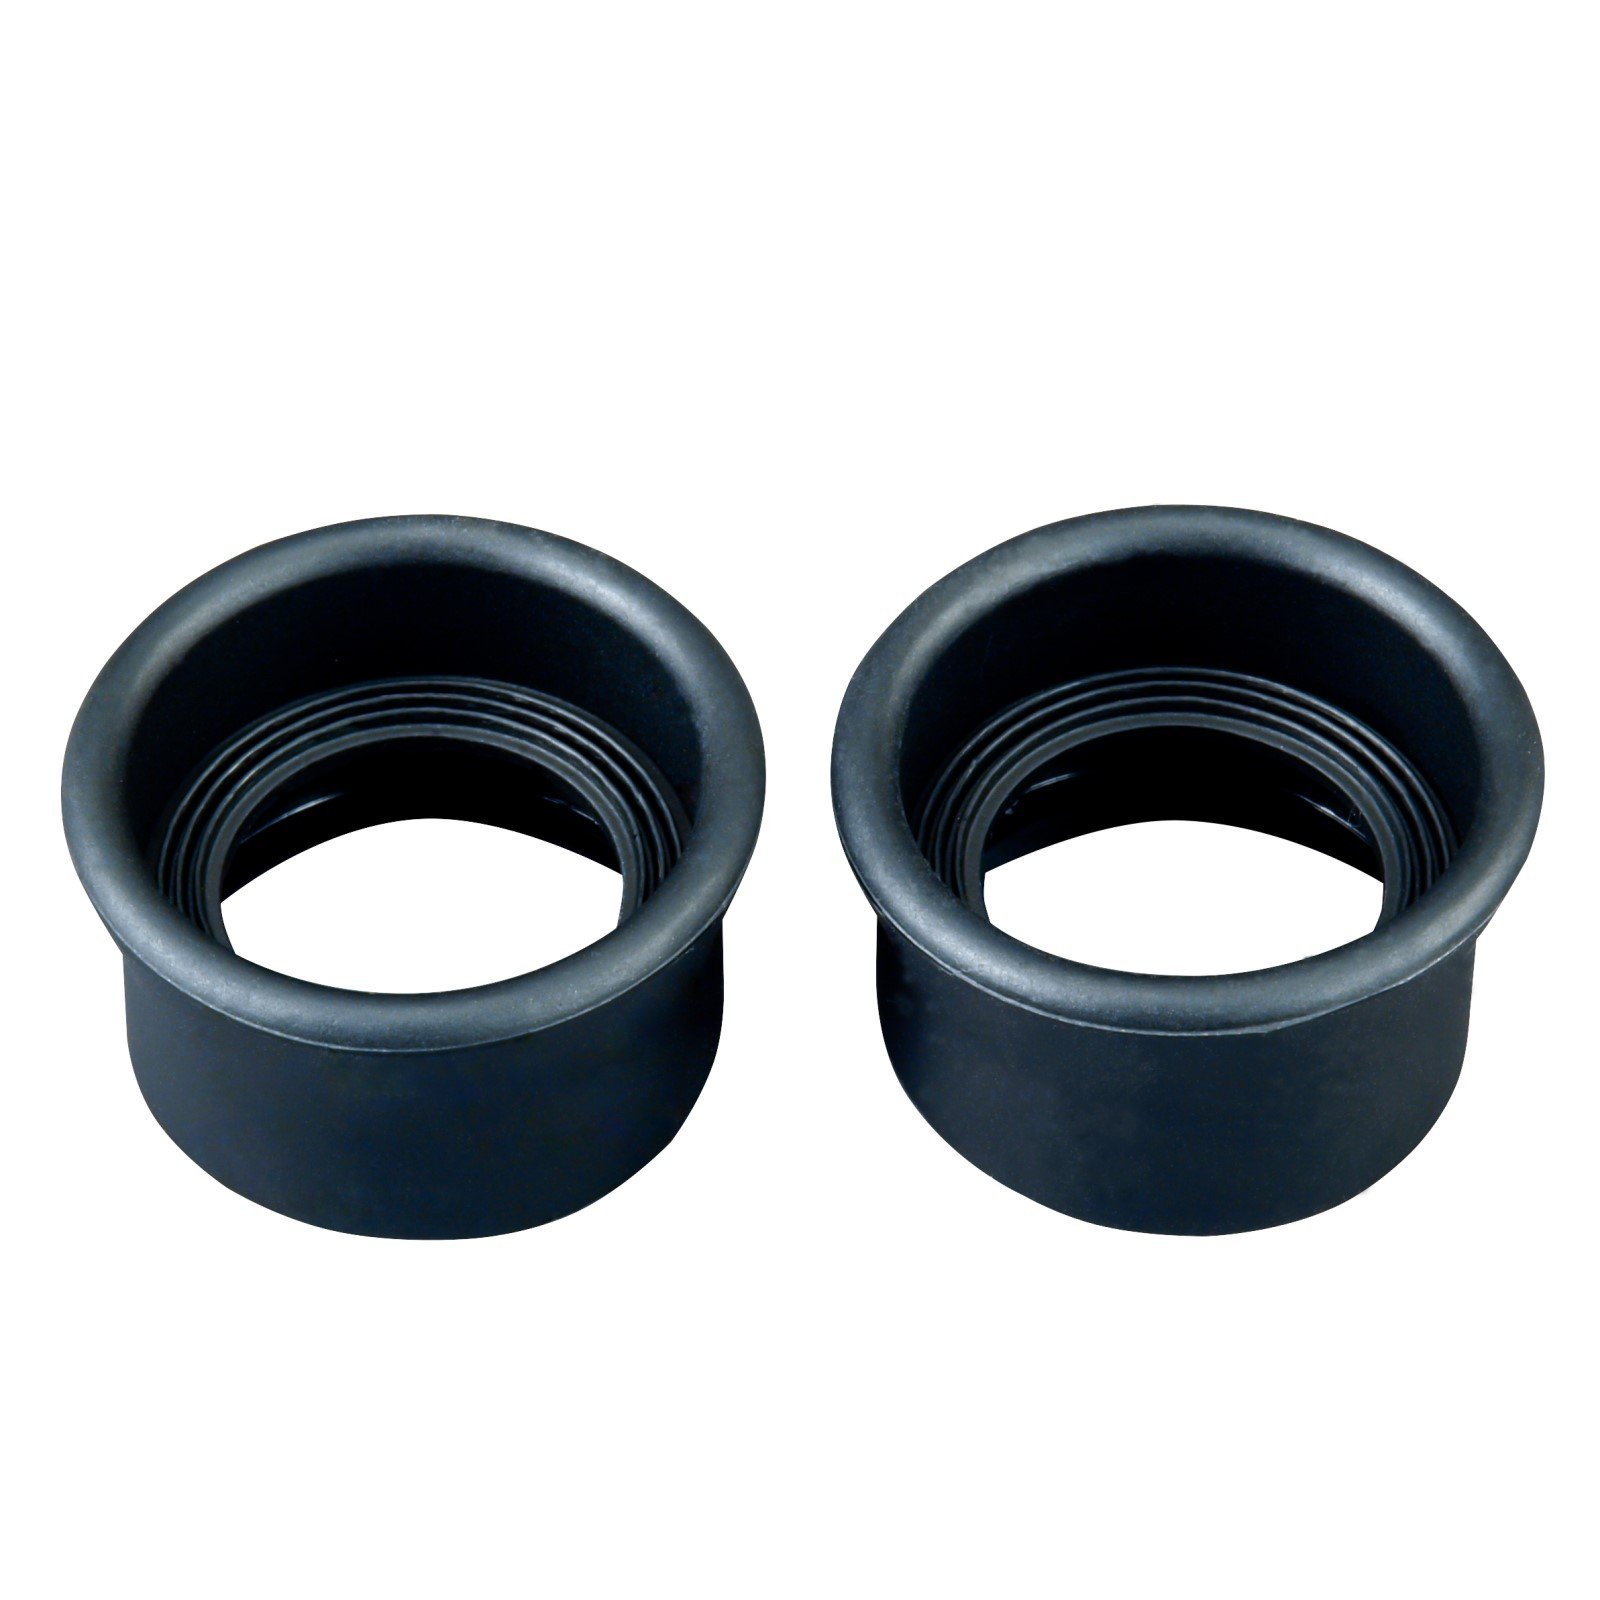 OMAX Small Pair of Rubber Eyecups for Microscopes